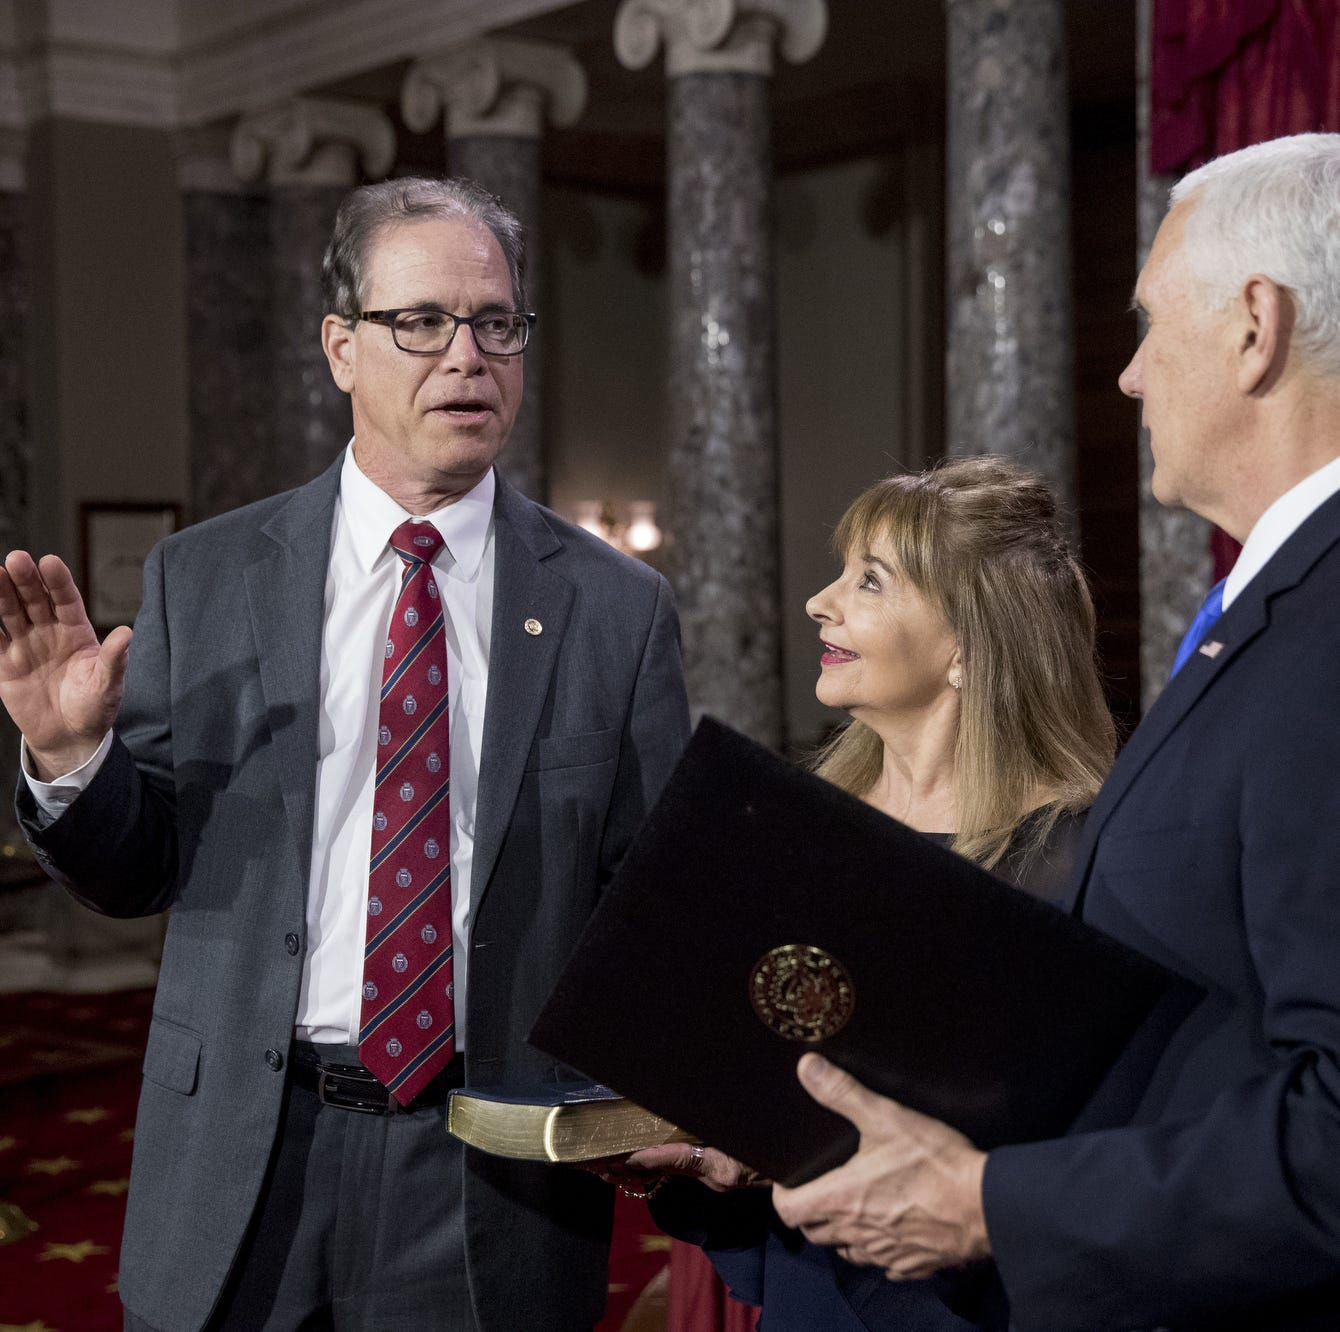 Vice President Mike Pence administers the Senate oath of office to Sen. Mike Braun, R-Ind., accompanied by his wife Maureen during a mock swearing-in ceremony in the Old Senate Chamber on Capitol Hill in Washington, D.C., Thursday, Jan. 3, 2019, as the 116th Congress begins.